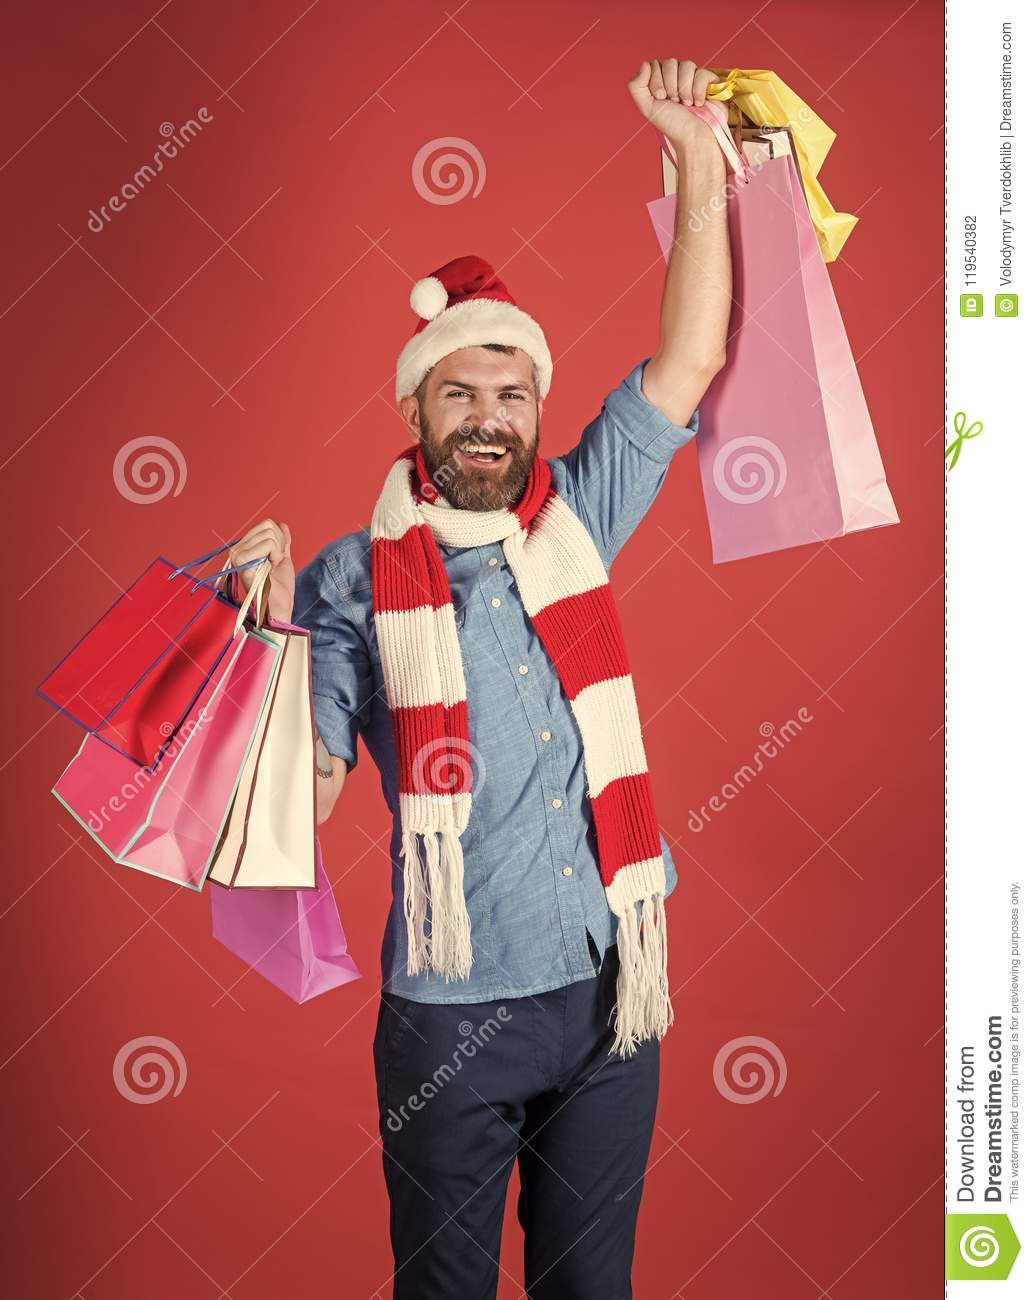 a3b4b5651875e Winter sale. Christmas man shopper smile in santa hat with winner gesture.  Hipster hold shopping bags on red background. New year